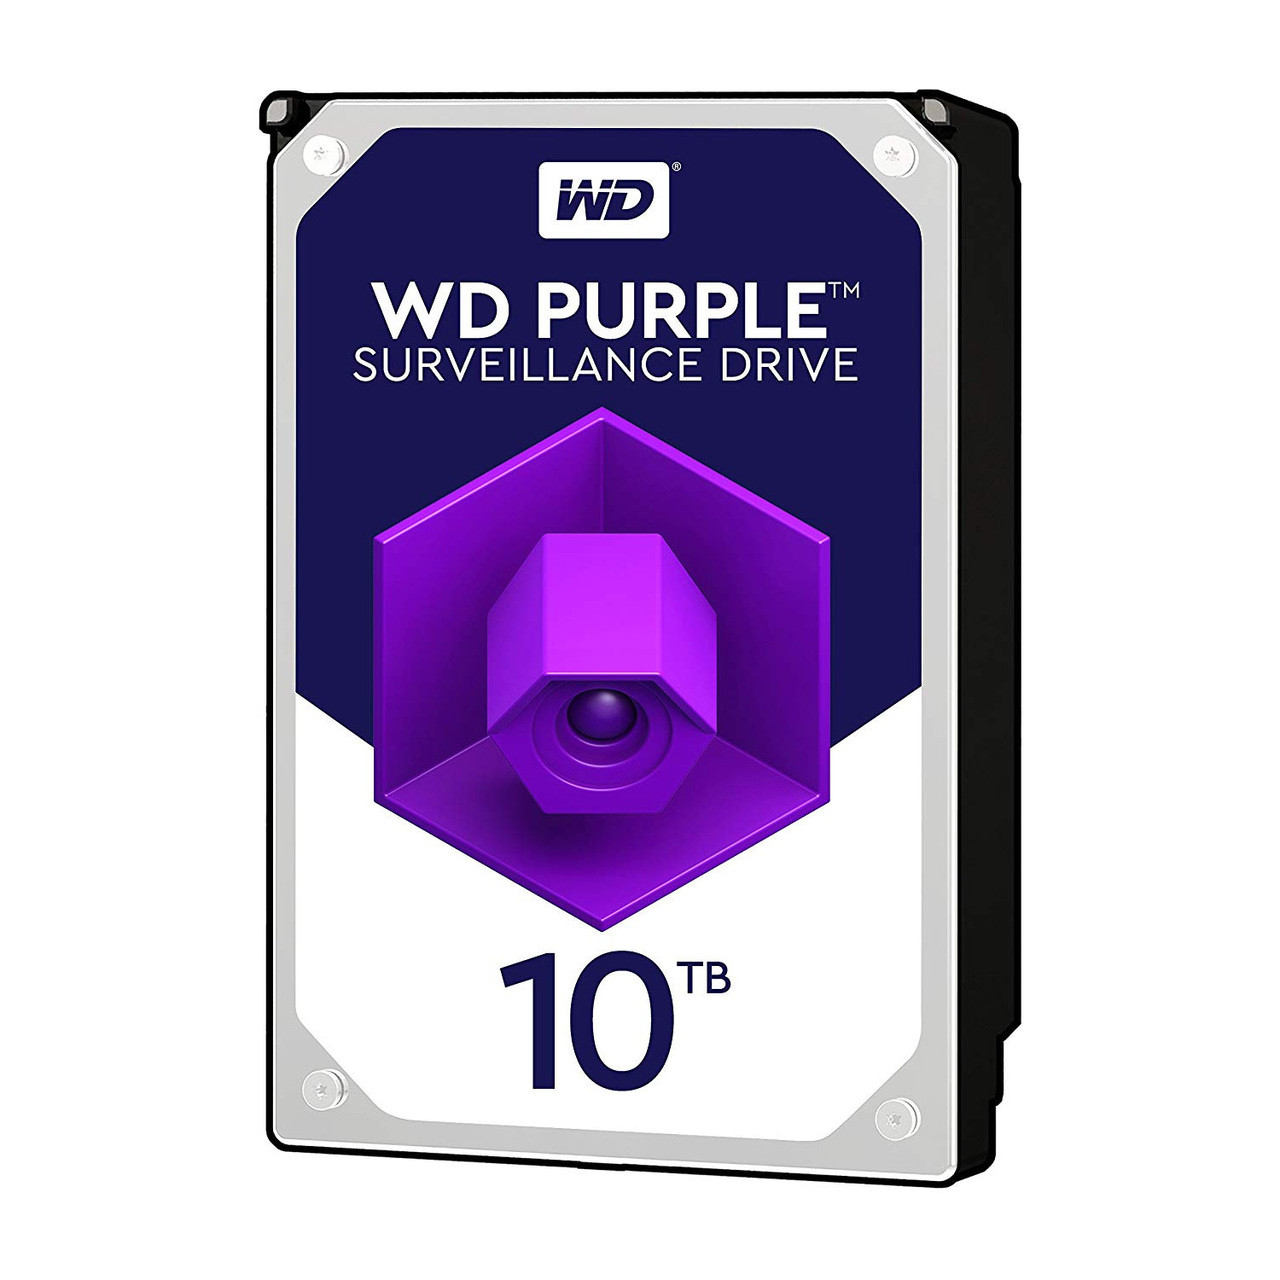 Western Digital Products - PlatinumMicro com